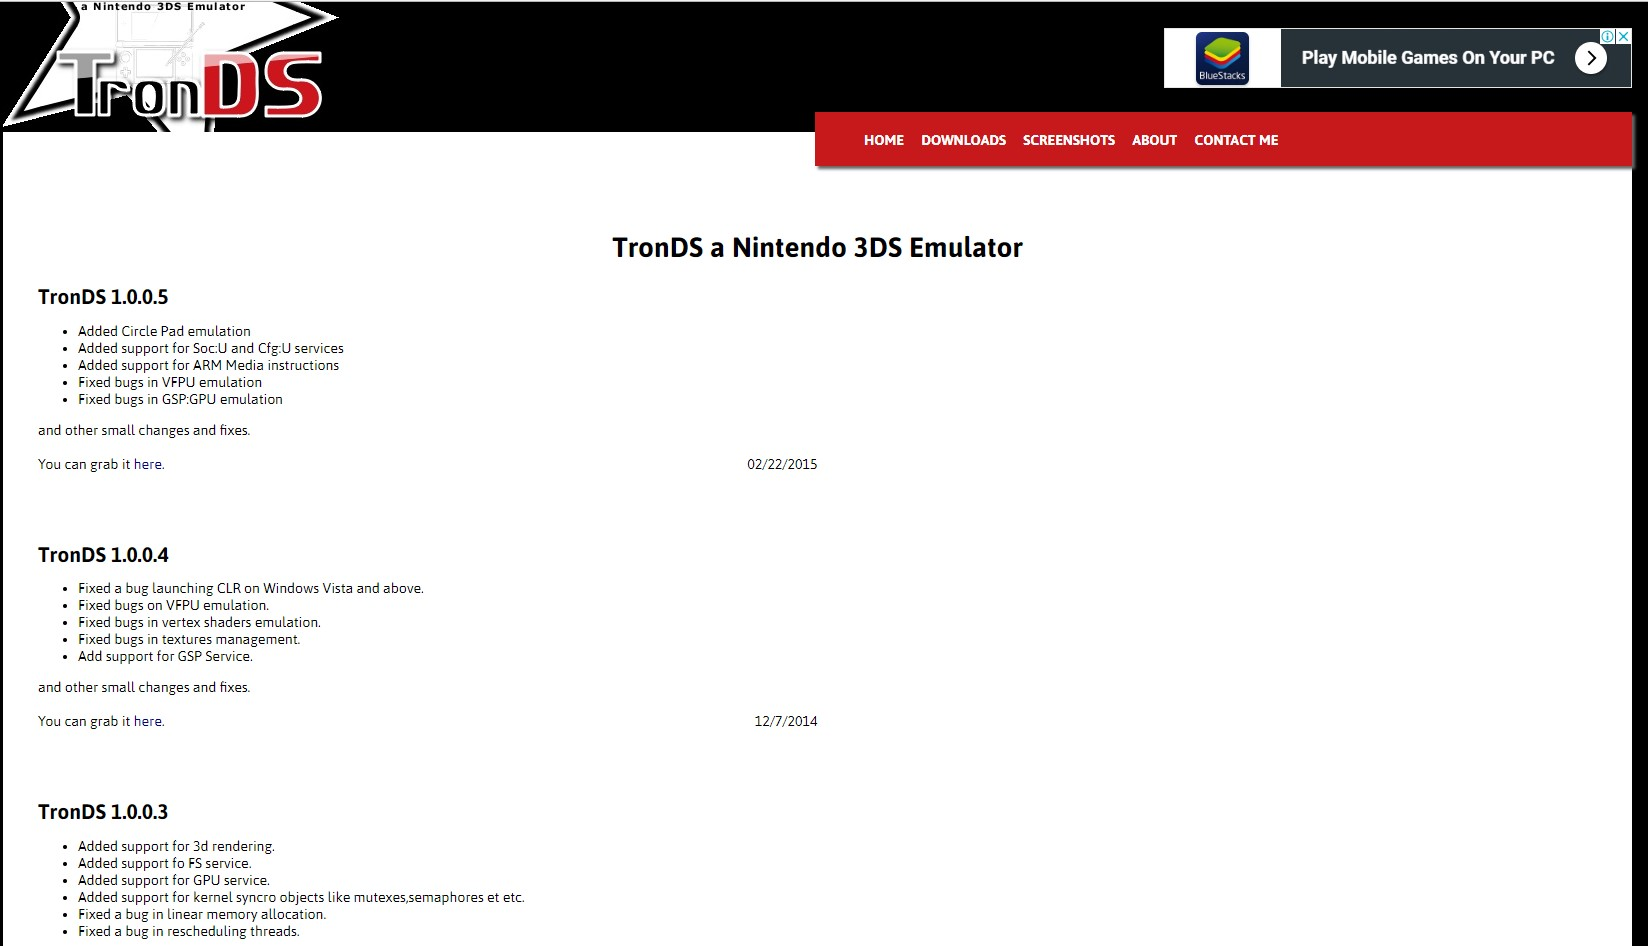 TronDS Nintendo 3DS emulator